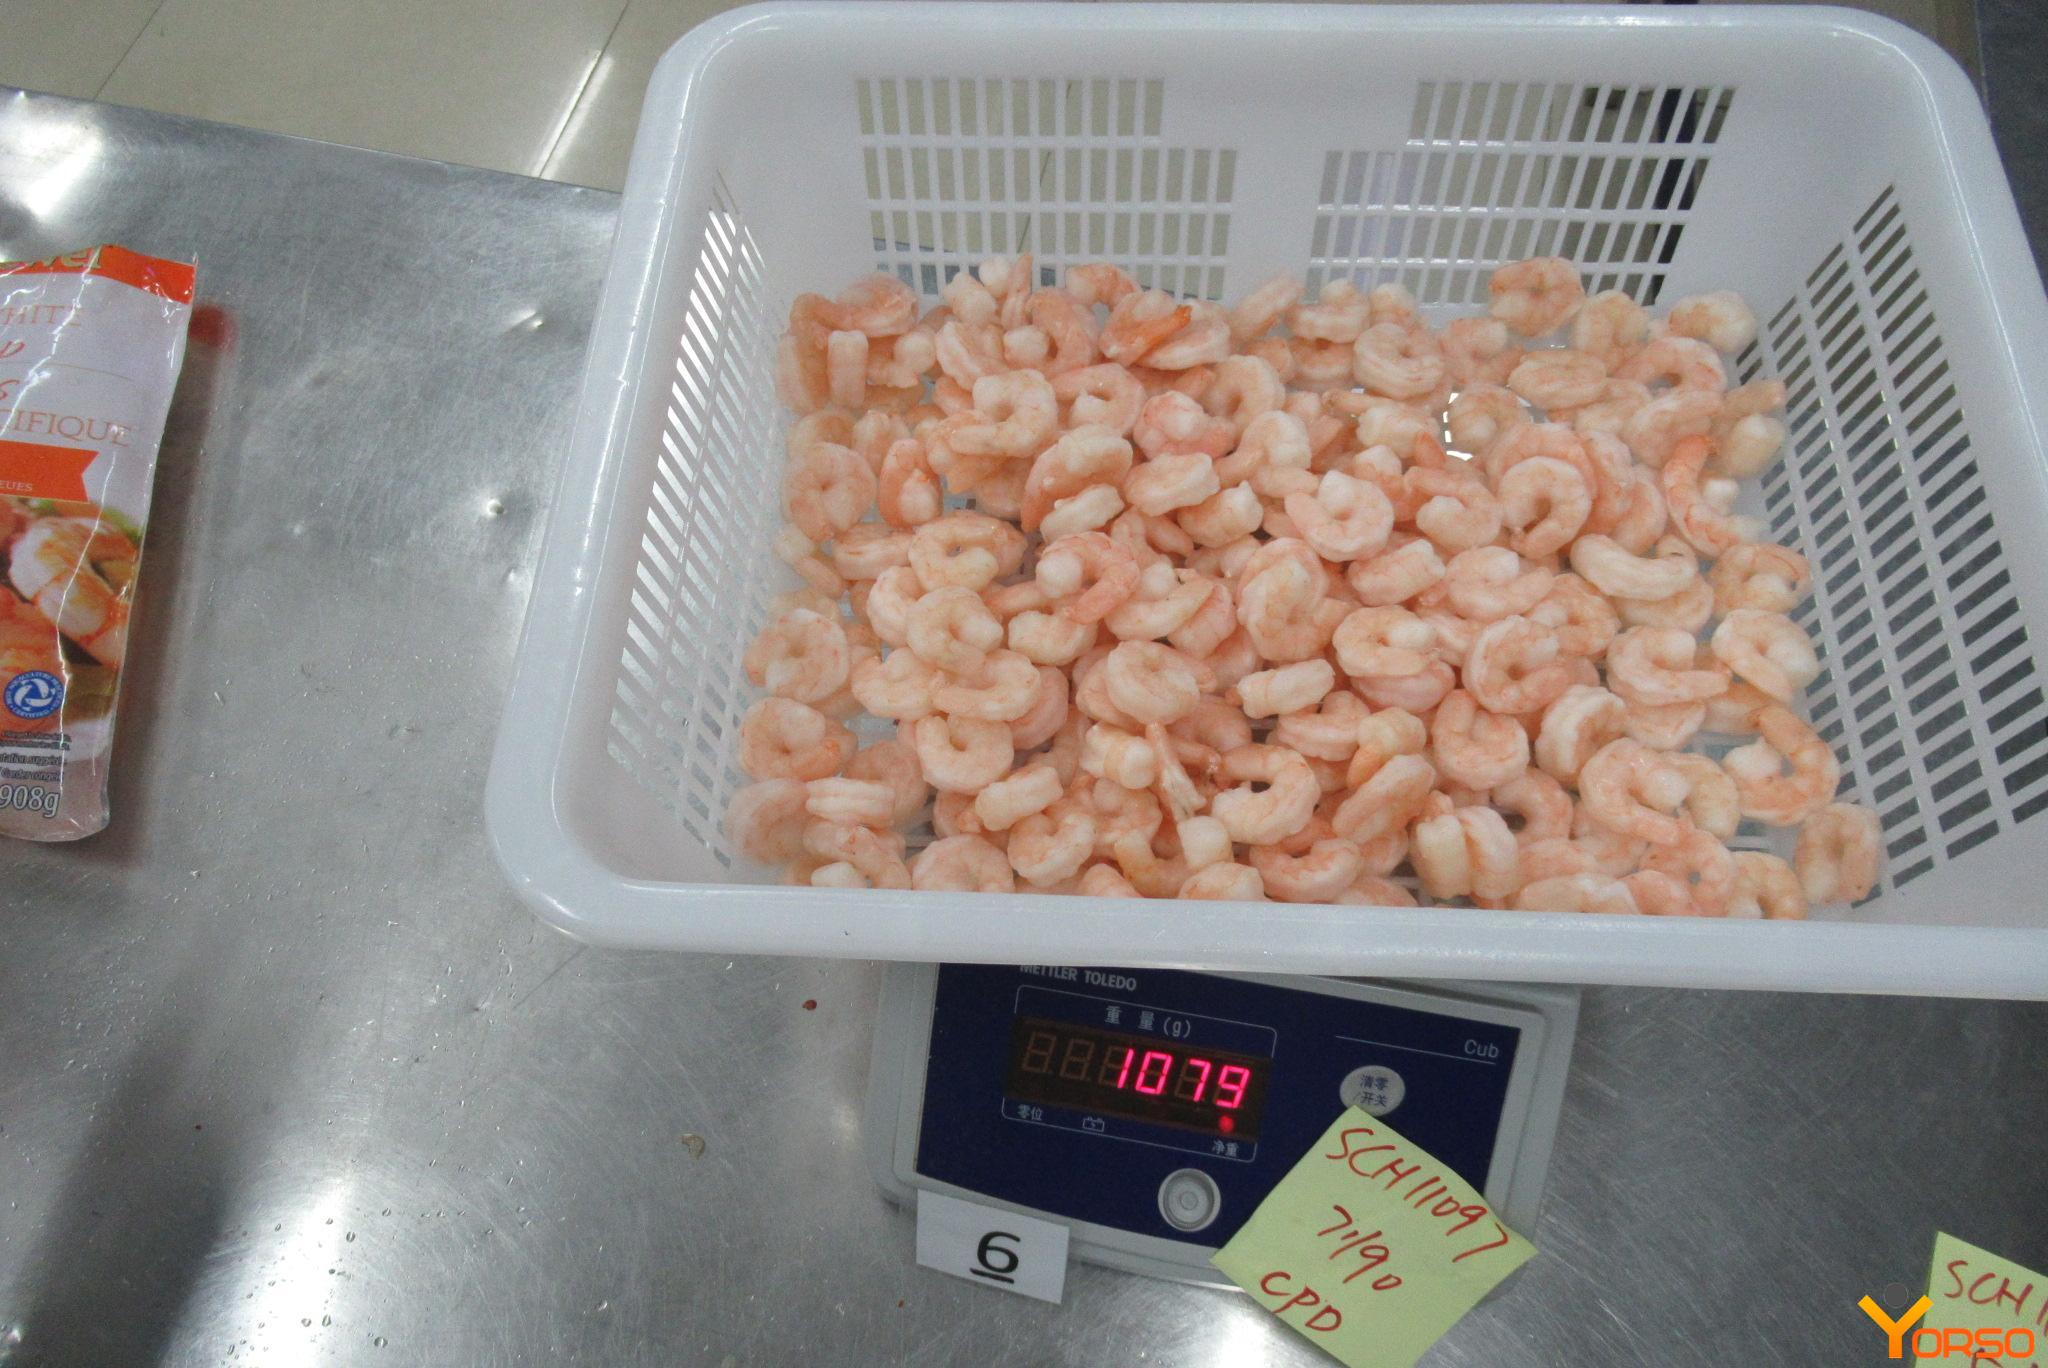 Shrimp Edulis, PD, 41/50, 1/10